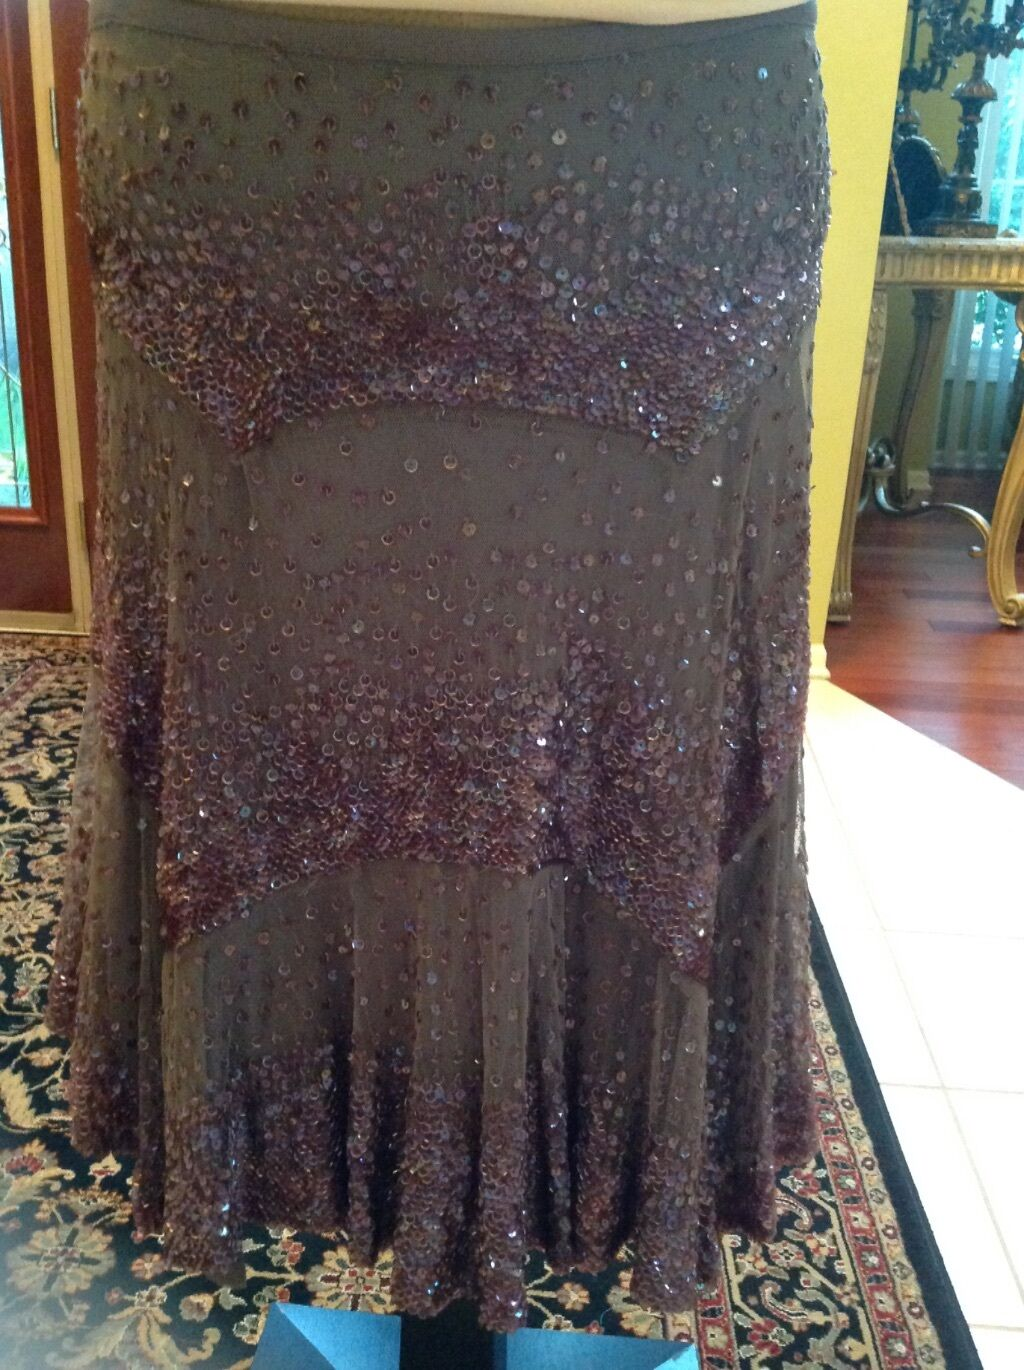 Gorgeous Evening Mauve & braun Sequins Skirt by Fench Connection, Größe 10, NWT